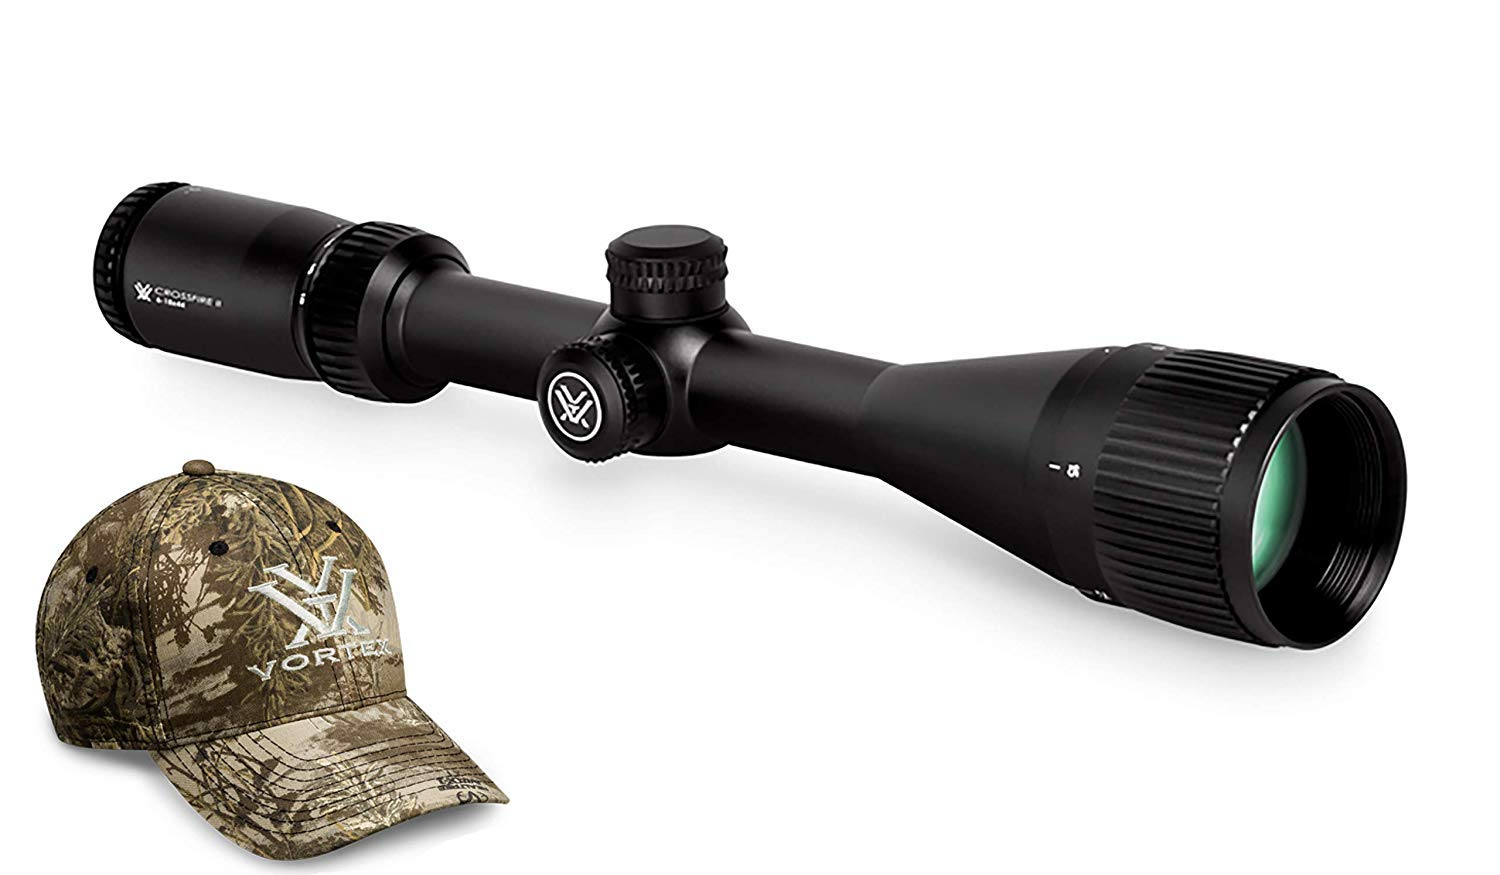 6. Vortex Optics Crossfire II 6-18x44mm AO SFP Riflescope